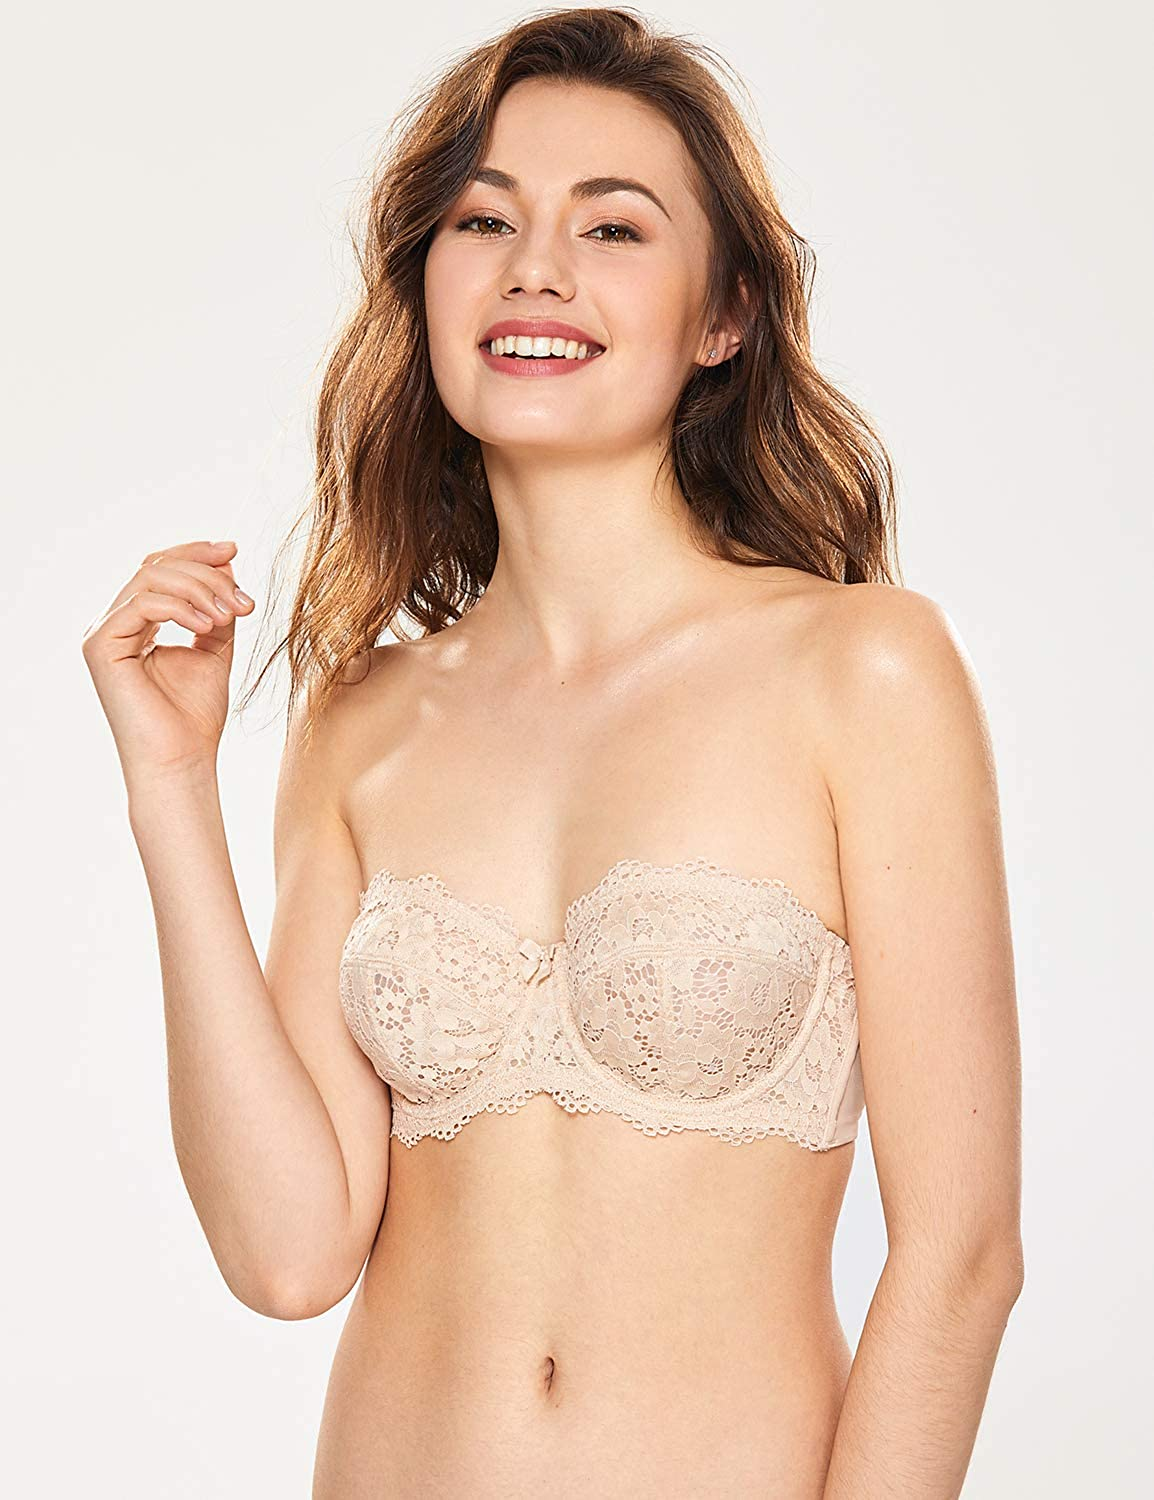 321ee45d737 DOBREVA Women s Lace Non-Padded Underwire Multiway Strapless Bra at Amazon  Women s Clothing store